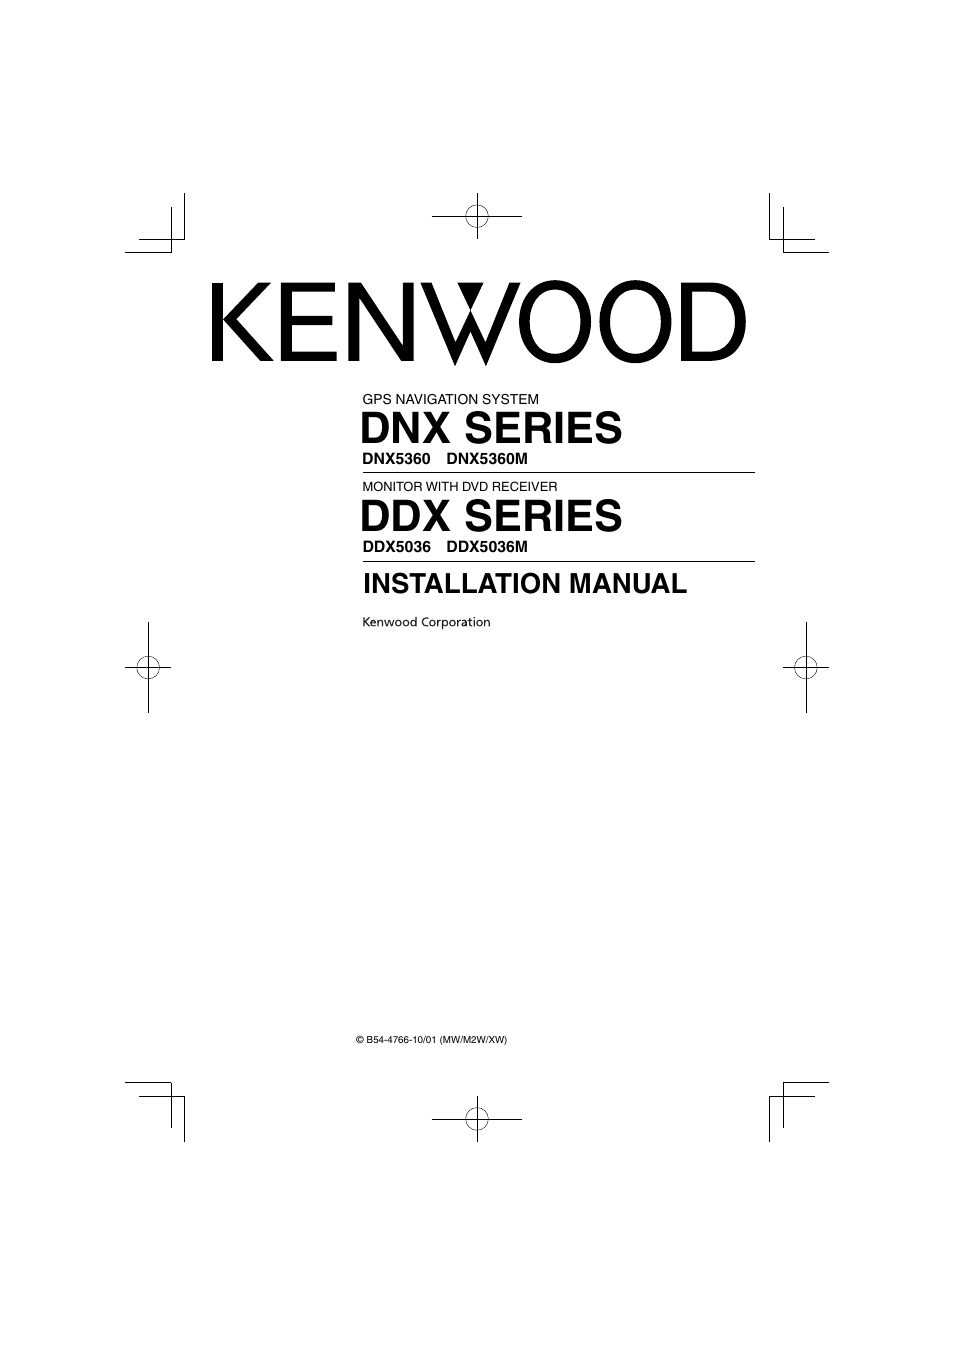 Kenwood ddx5036 user manual 11 pages also for dnx5360 ddx5036m sciox Gallery